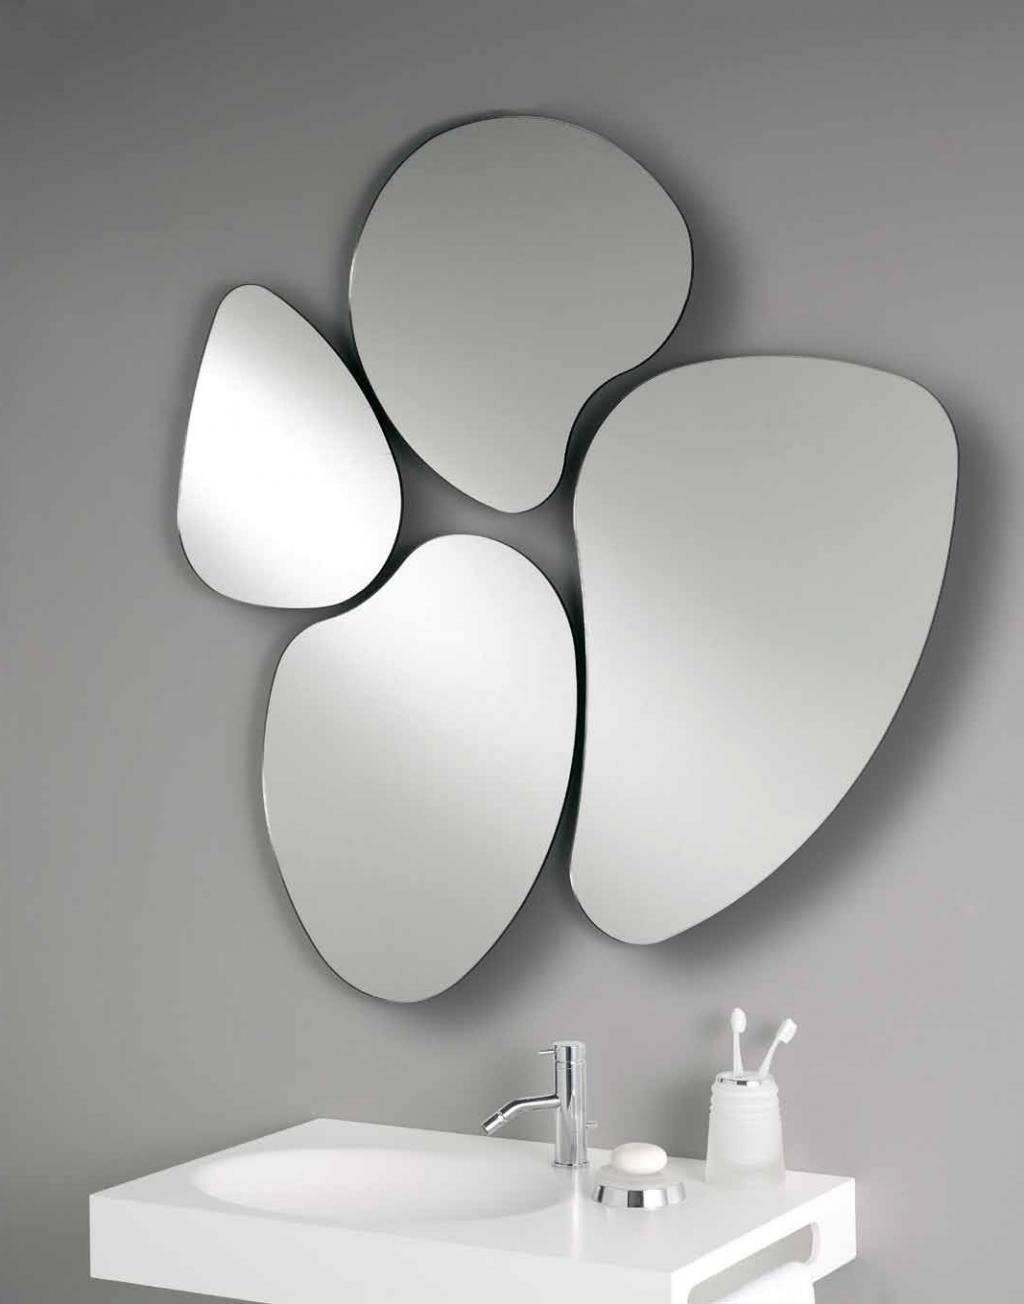 Uncategorized Shaped Mirrors Englishsurvivalkit Home Design: odd shaped mirrors